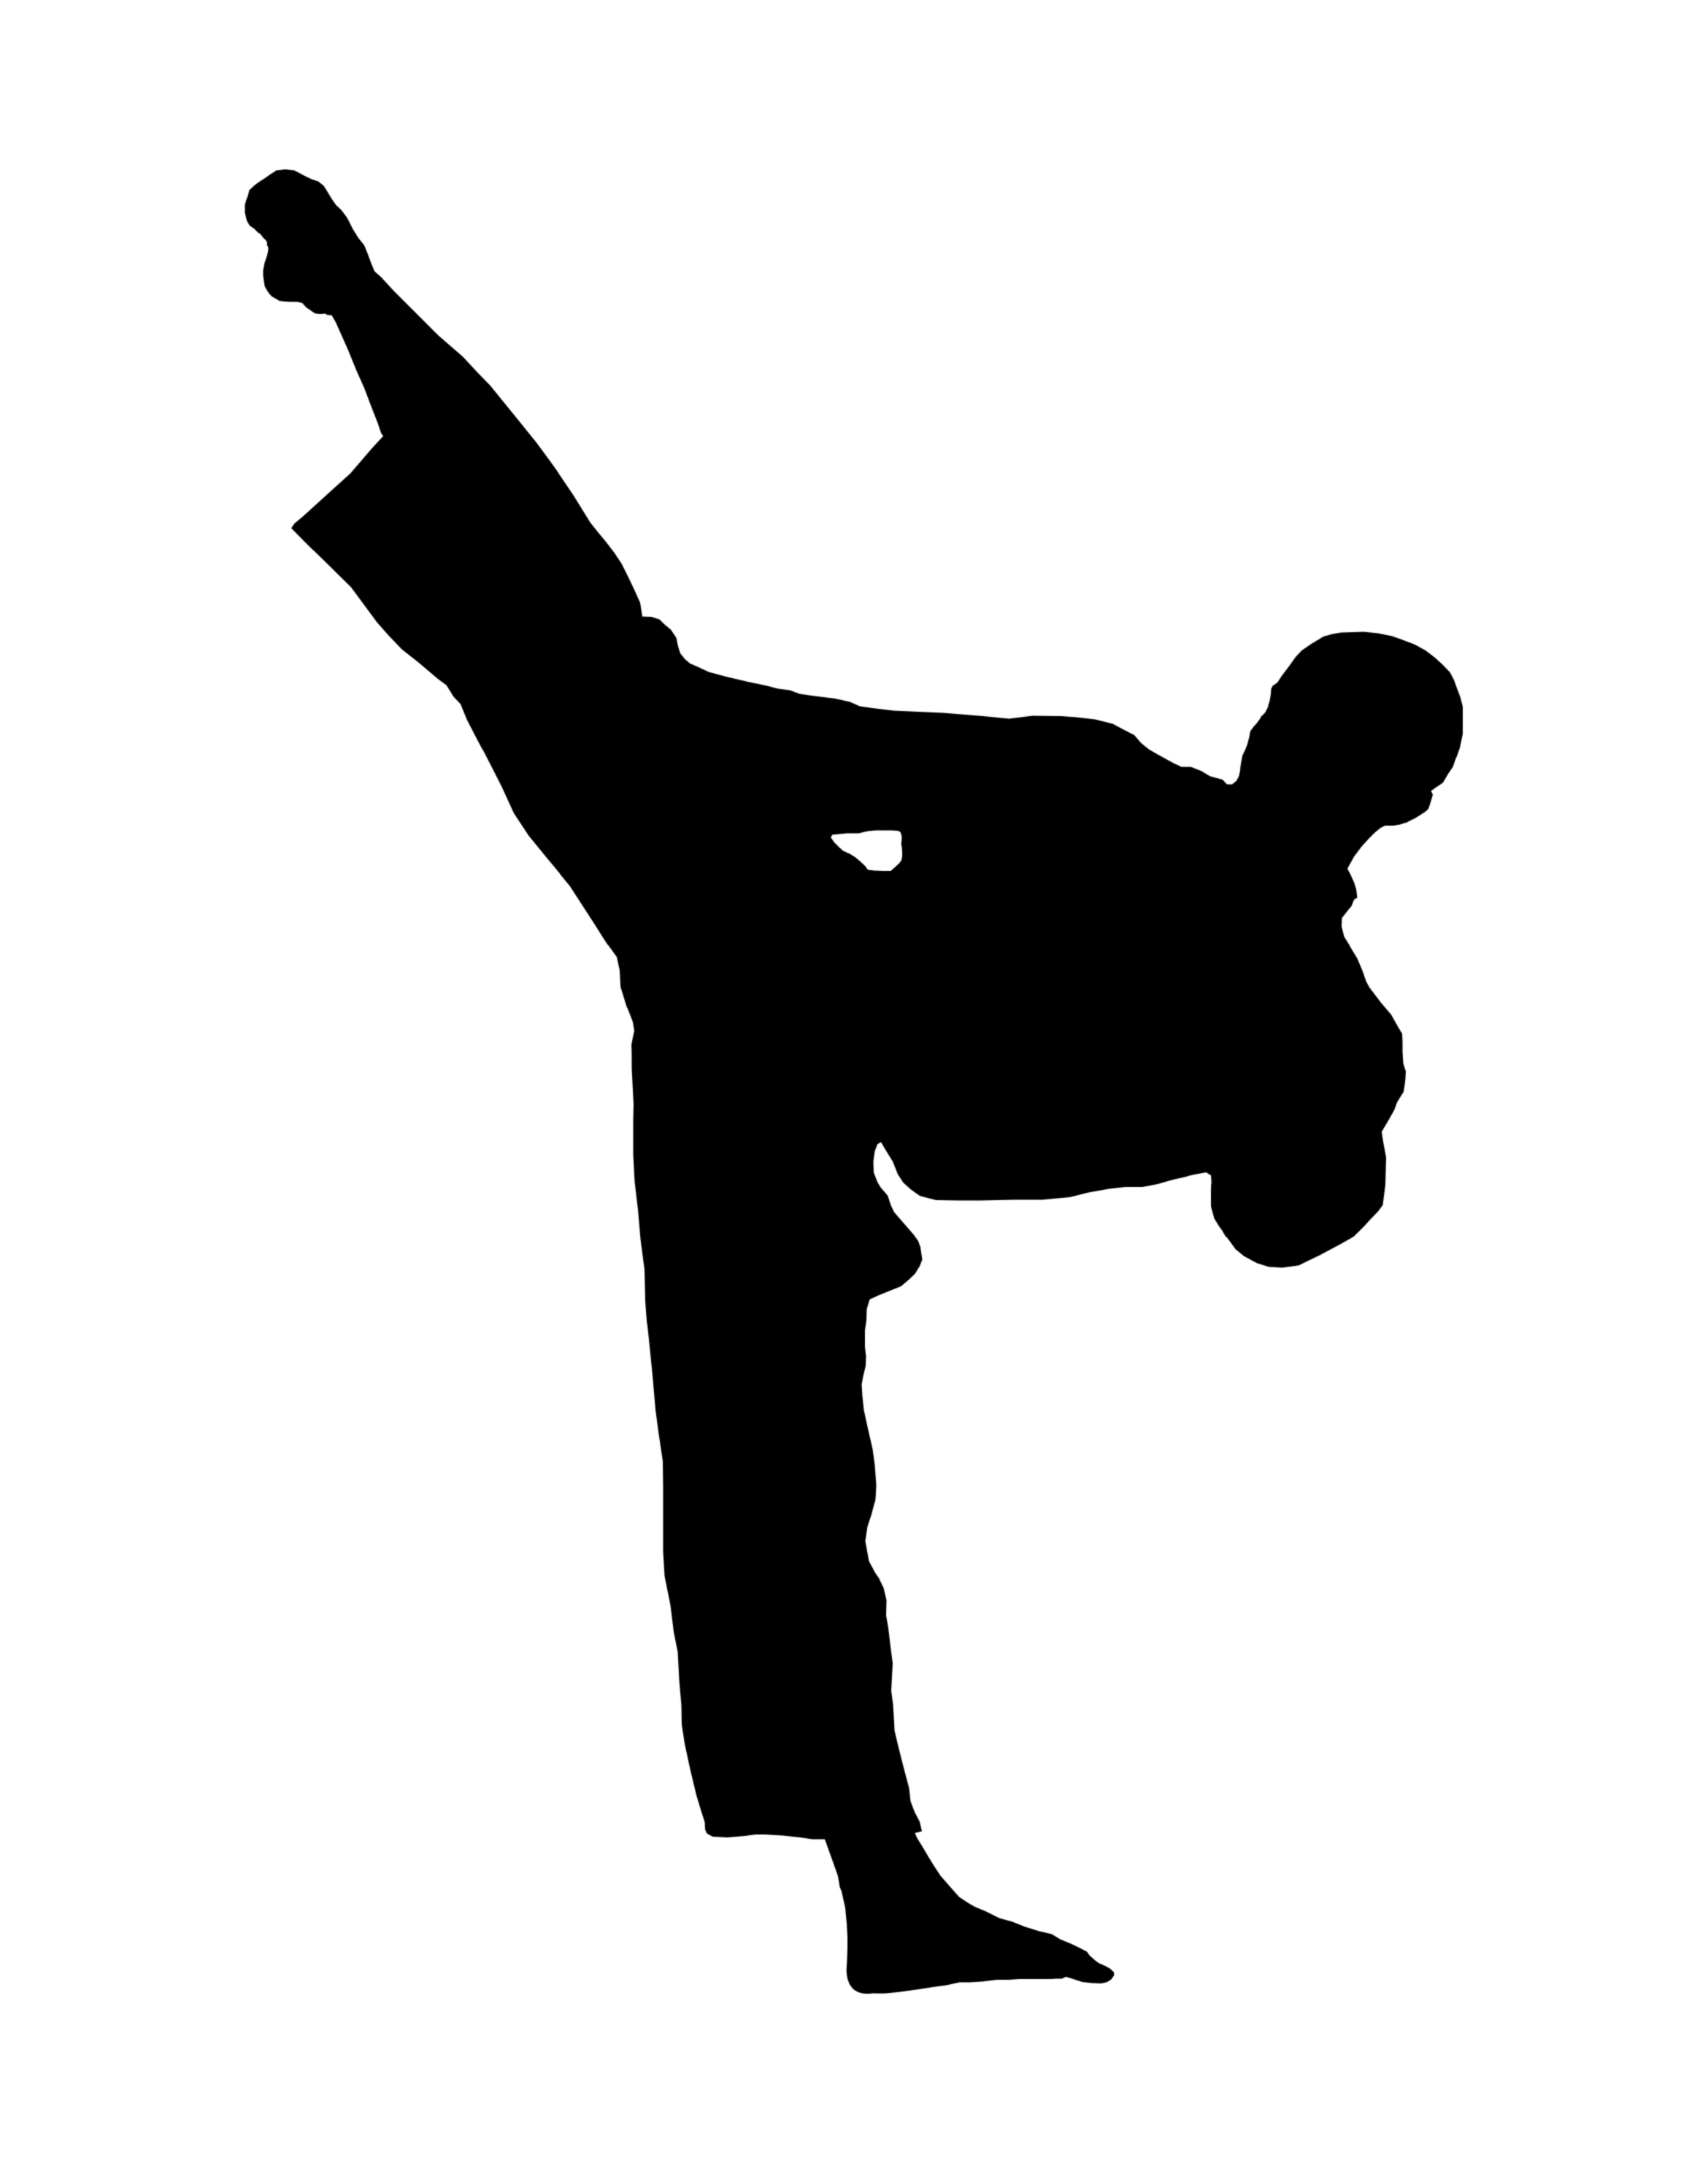 school teacher kickboxing clipart #8